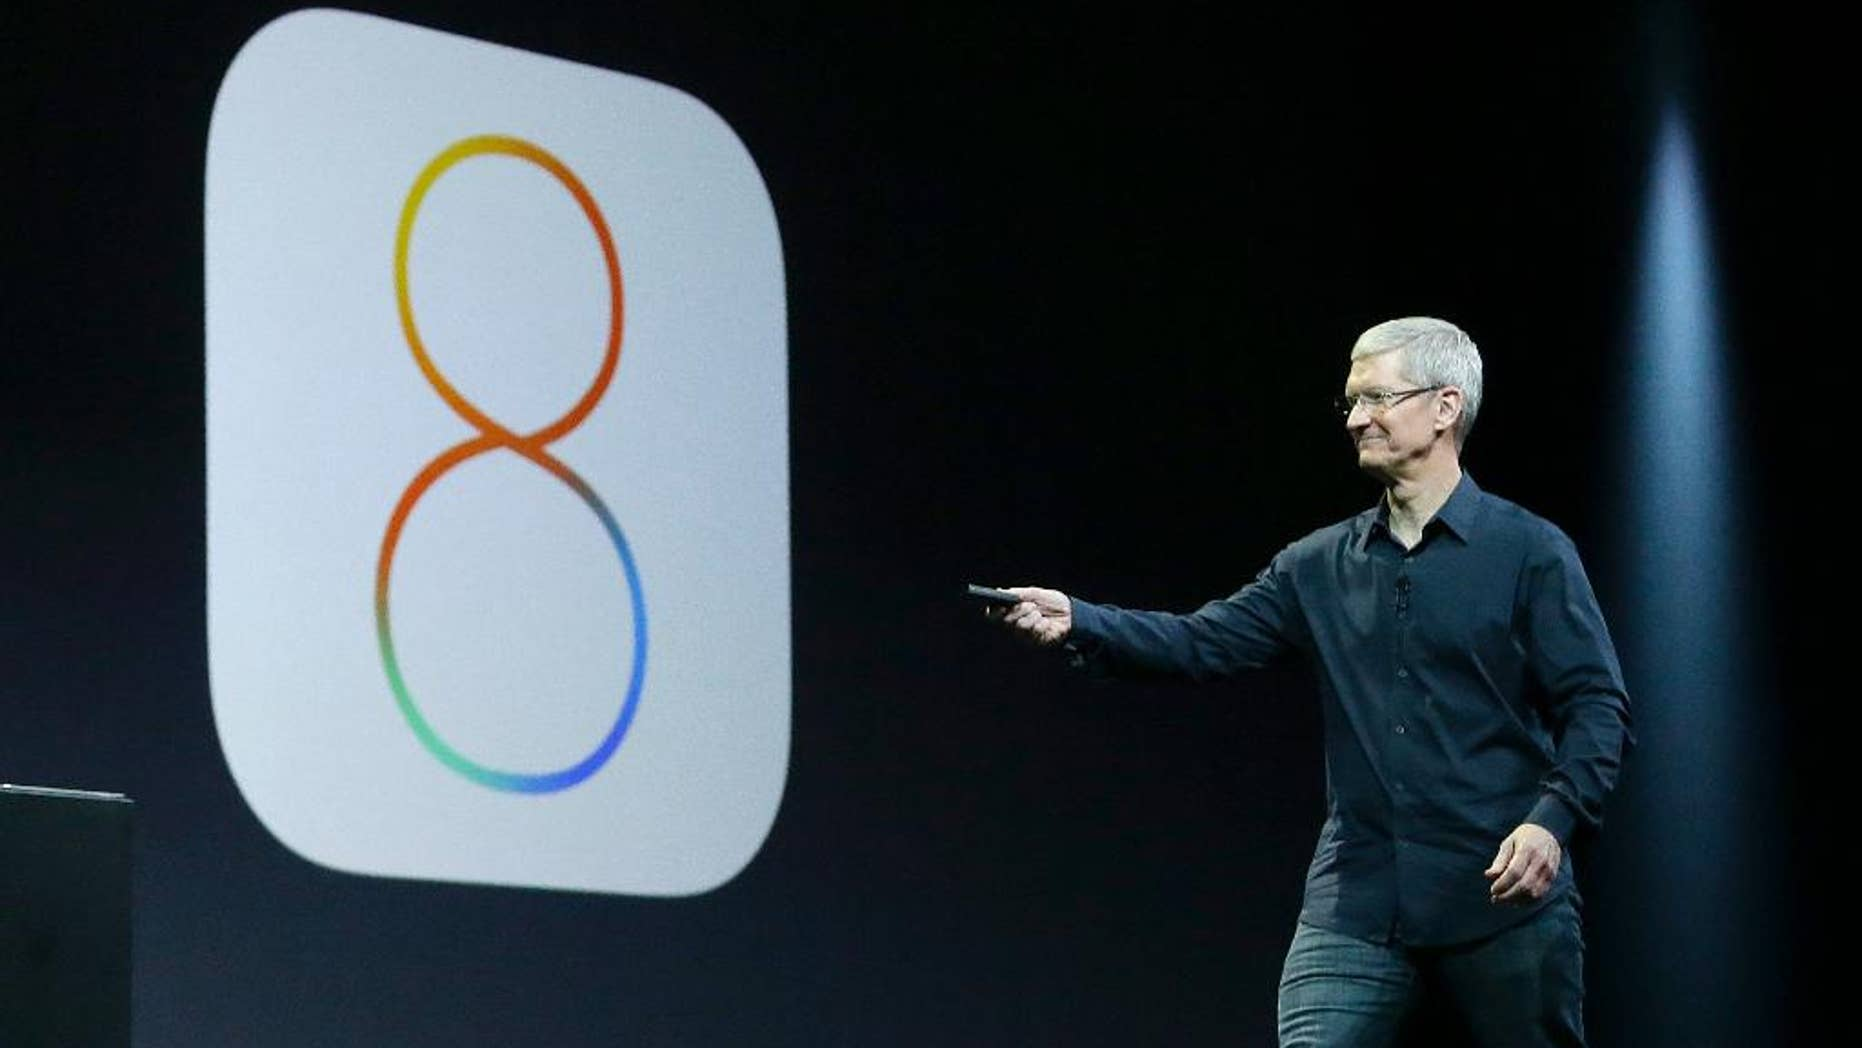 FILE - In this June 2, 2014 photo, Apple CEO Tim Cook speaks about iOS 8 at the Apple Worldwide Developers Conference in San Francisco. Apple has stopped providing an update to its new iOS 8 mobile operating software, following complaints by some users who said Wednesday, Sept. 24, 2014, that the update interferes with their ability to make phone calls. (AP Photo/Jeff Chiu, File)